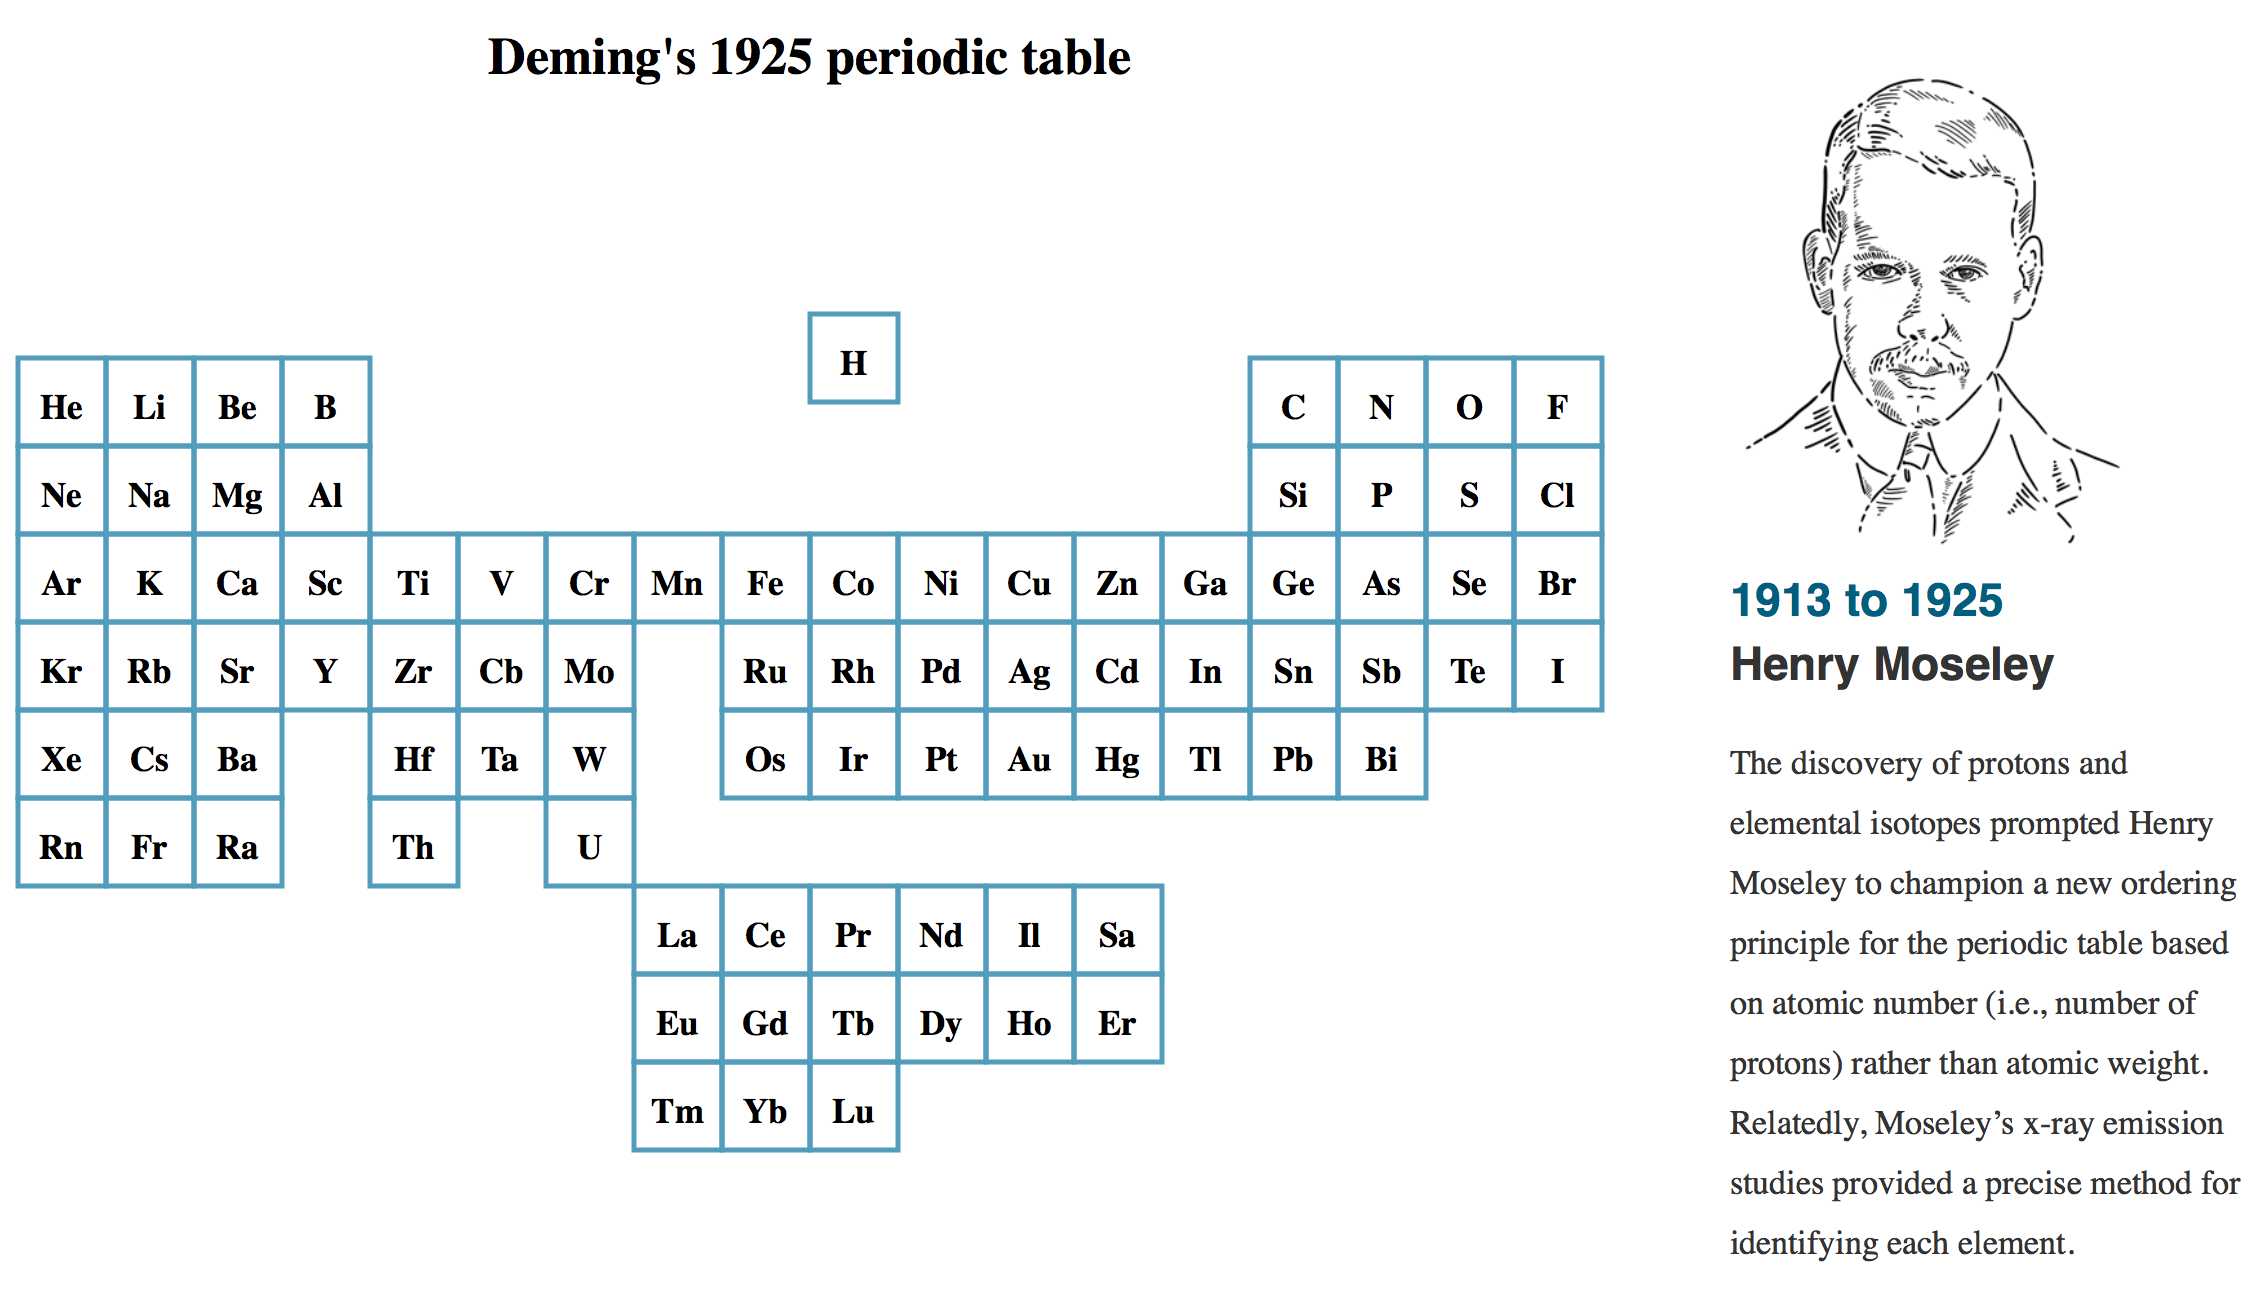 Evolution of the periodic table of elements